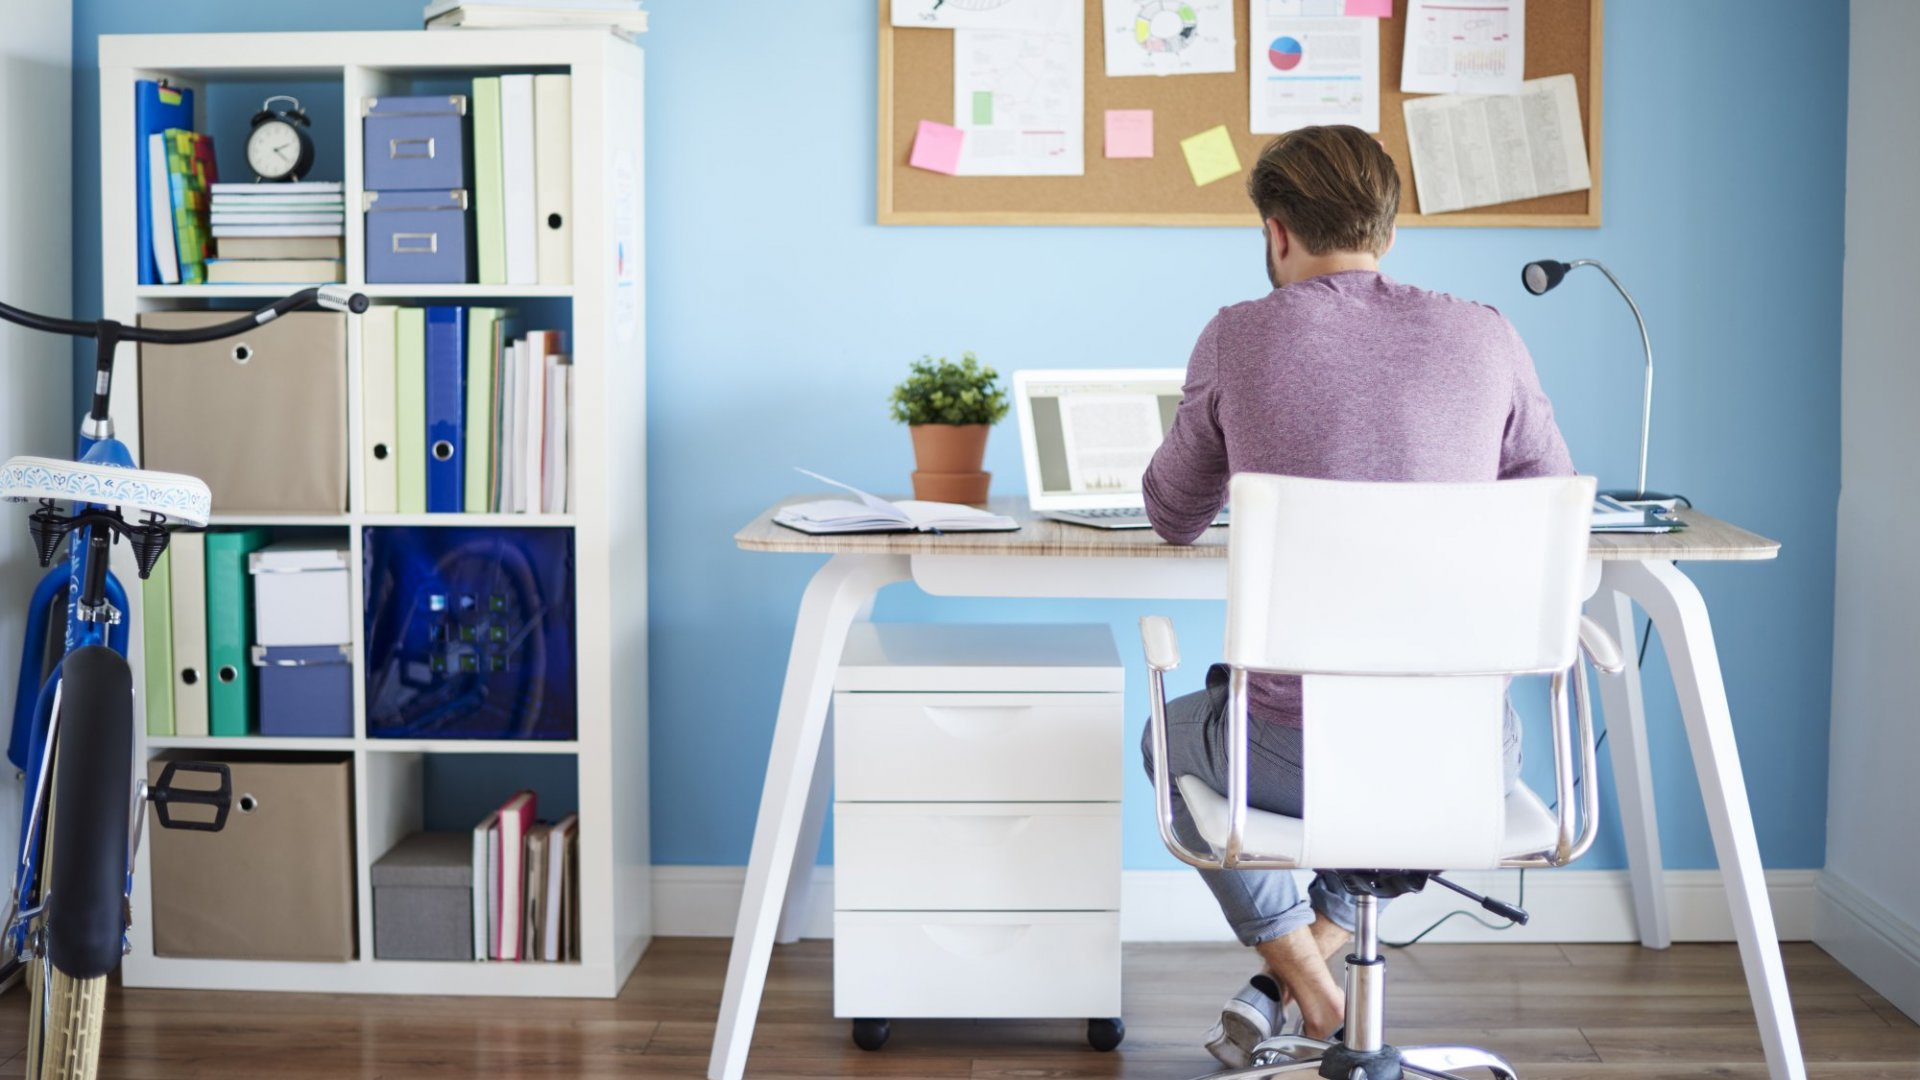 10 Really Smart Quotes About Working From Home